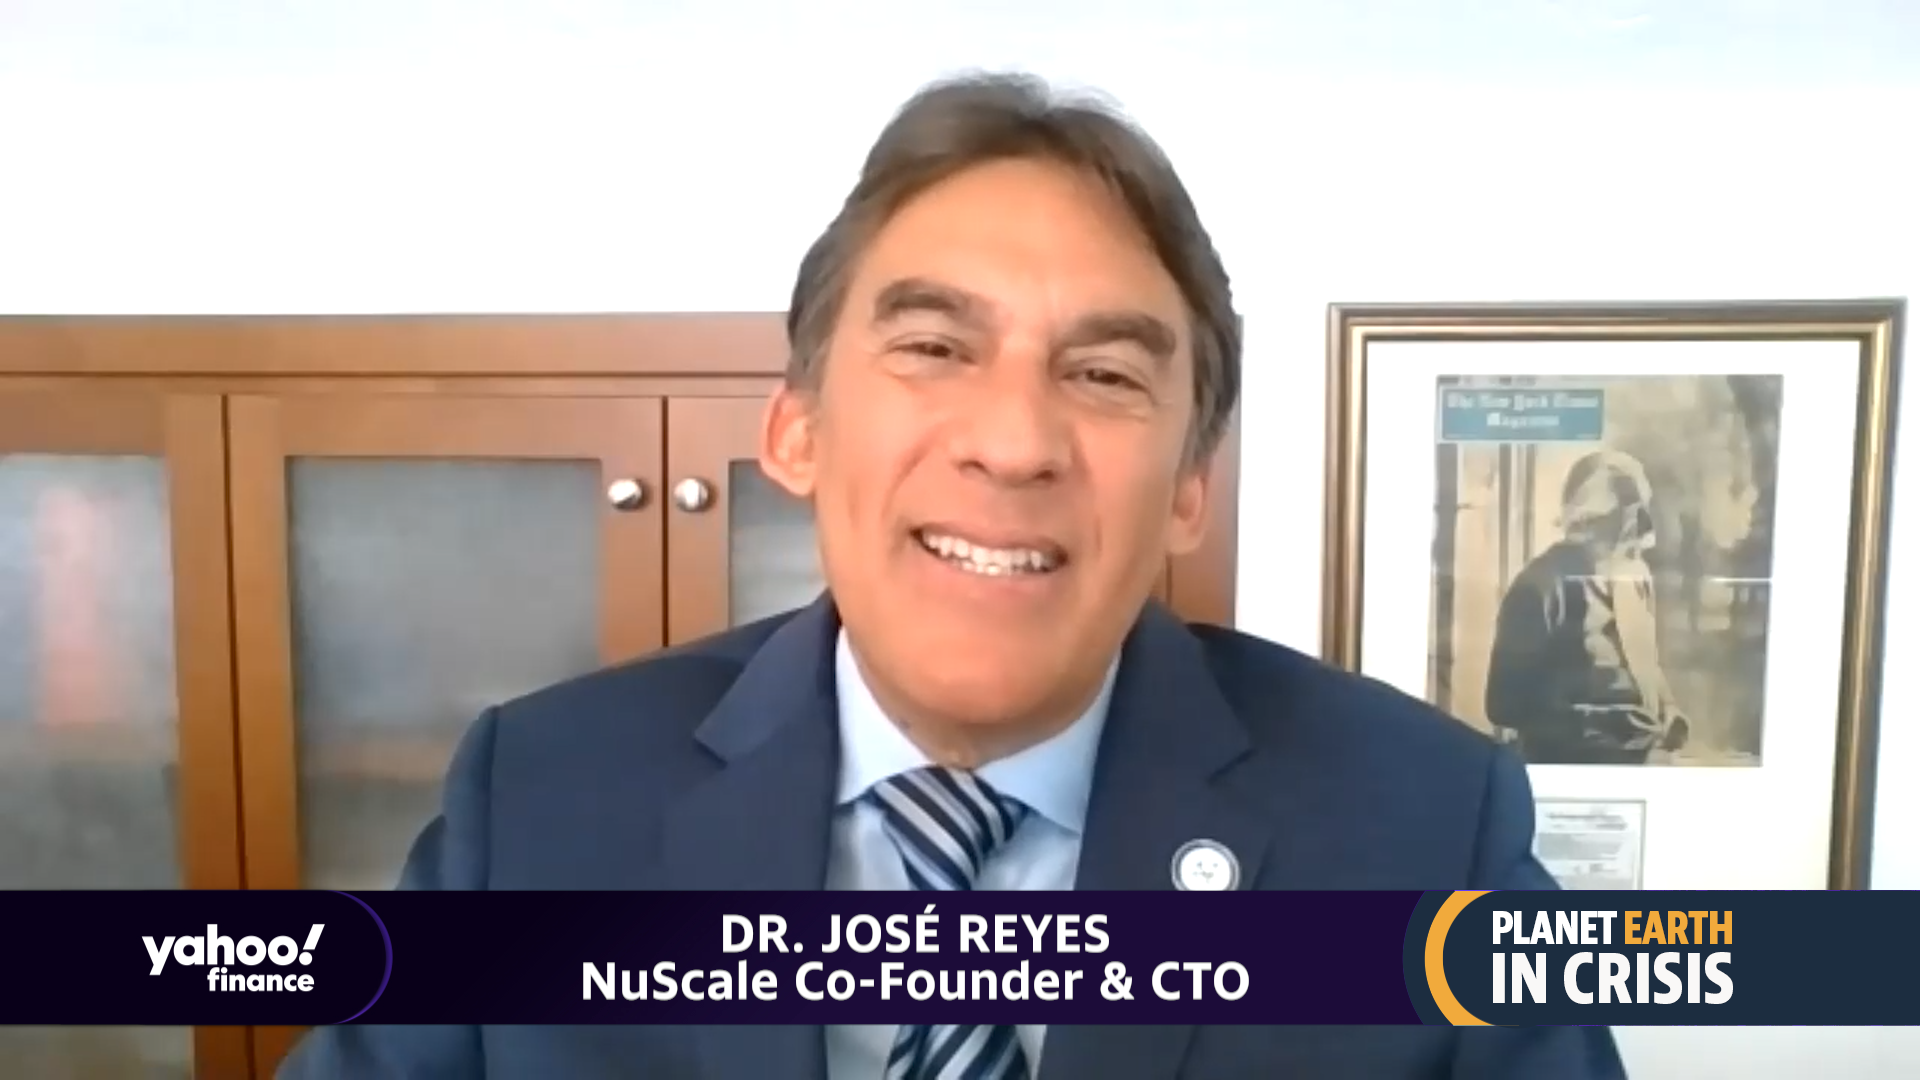 Co-founder of NuScale and CTO dr.  José Reyes on the future of nuclear energy